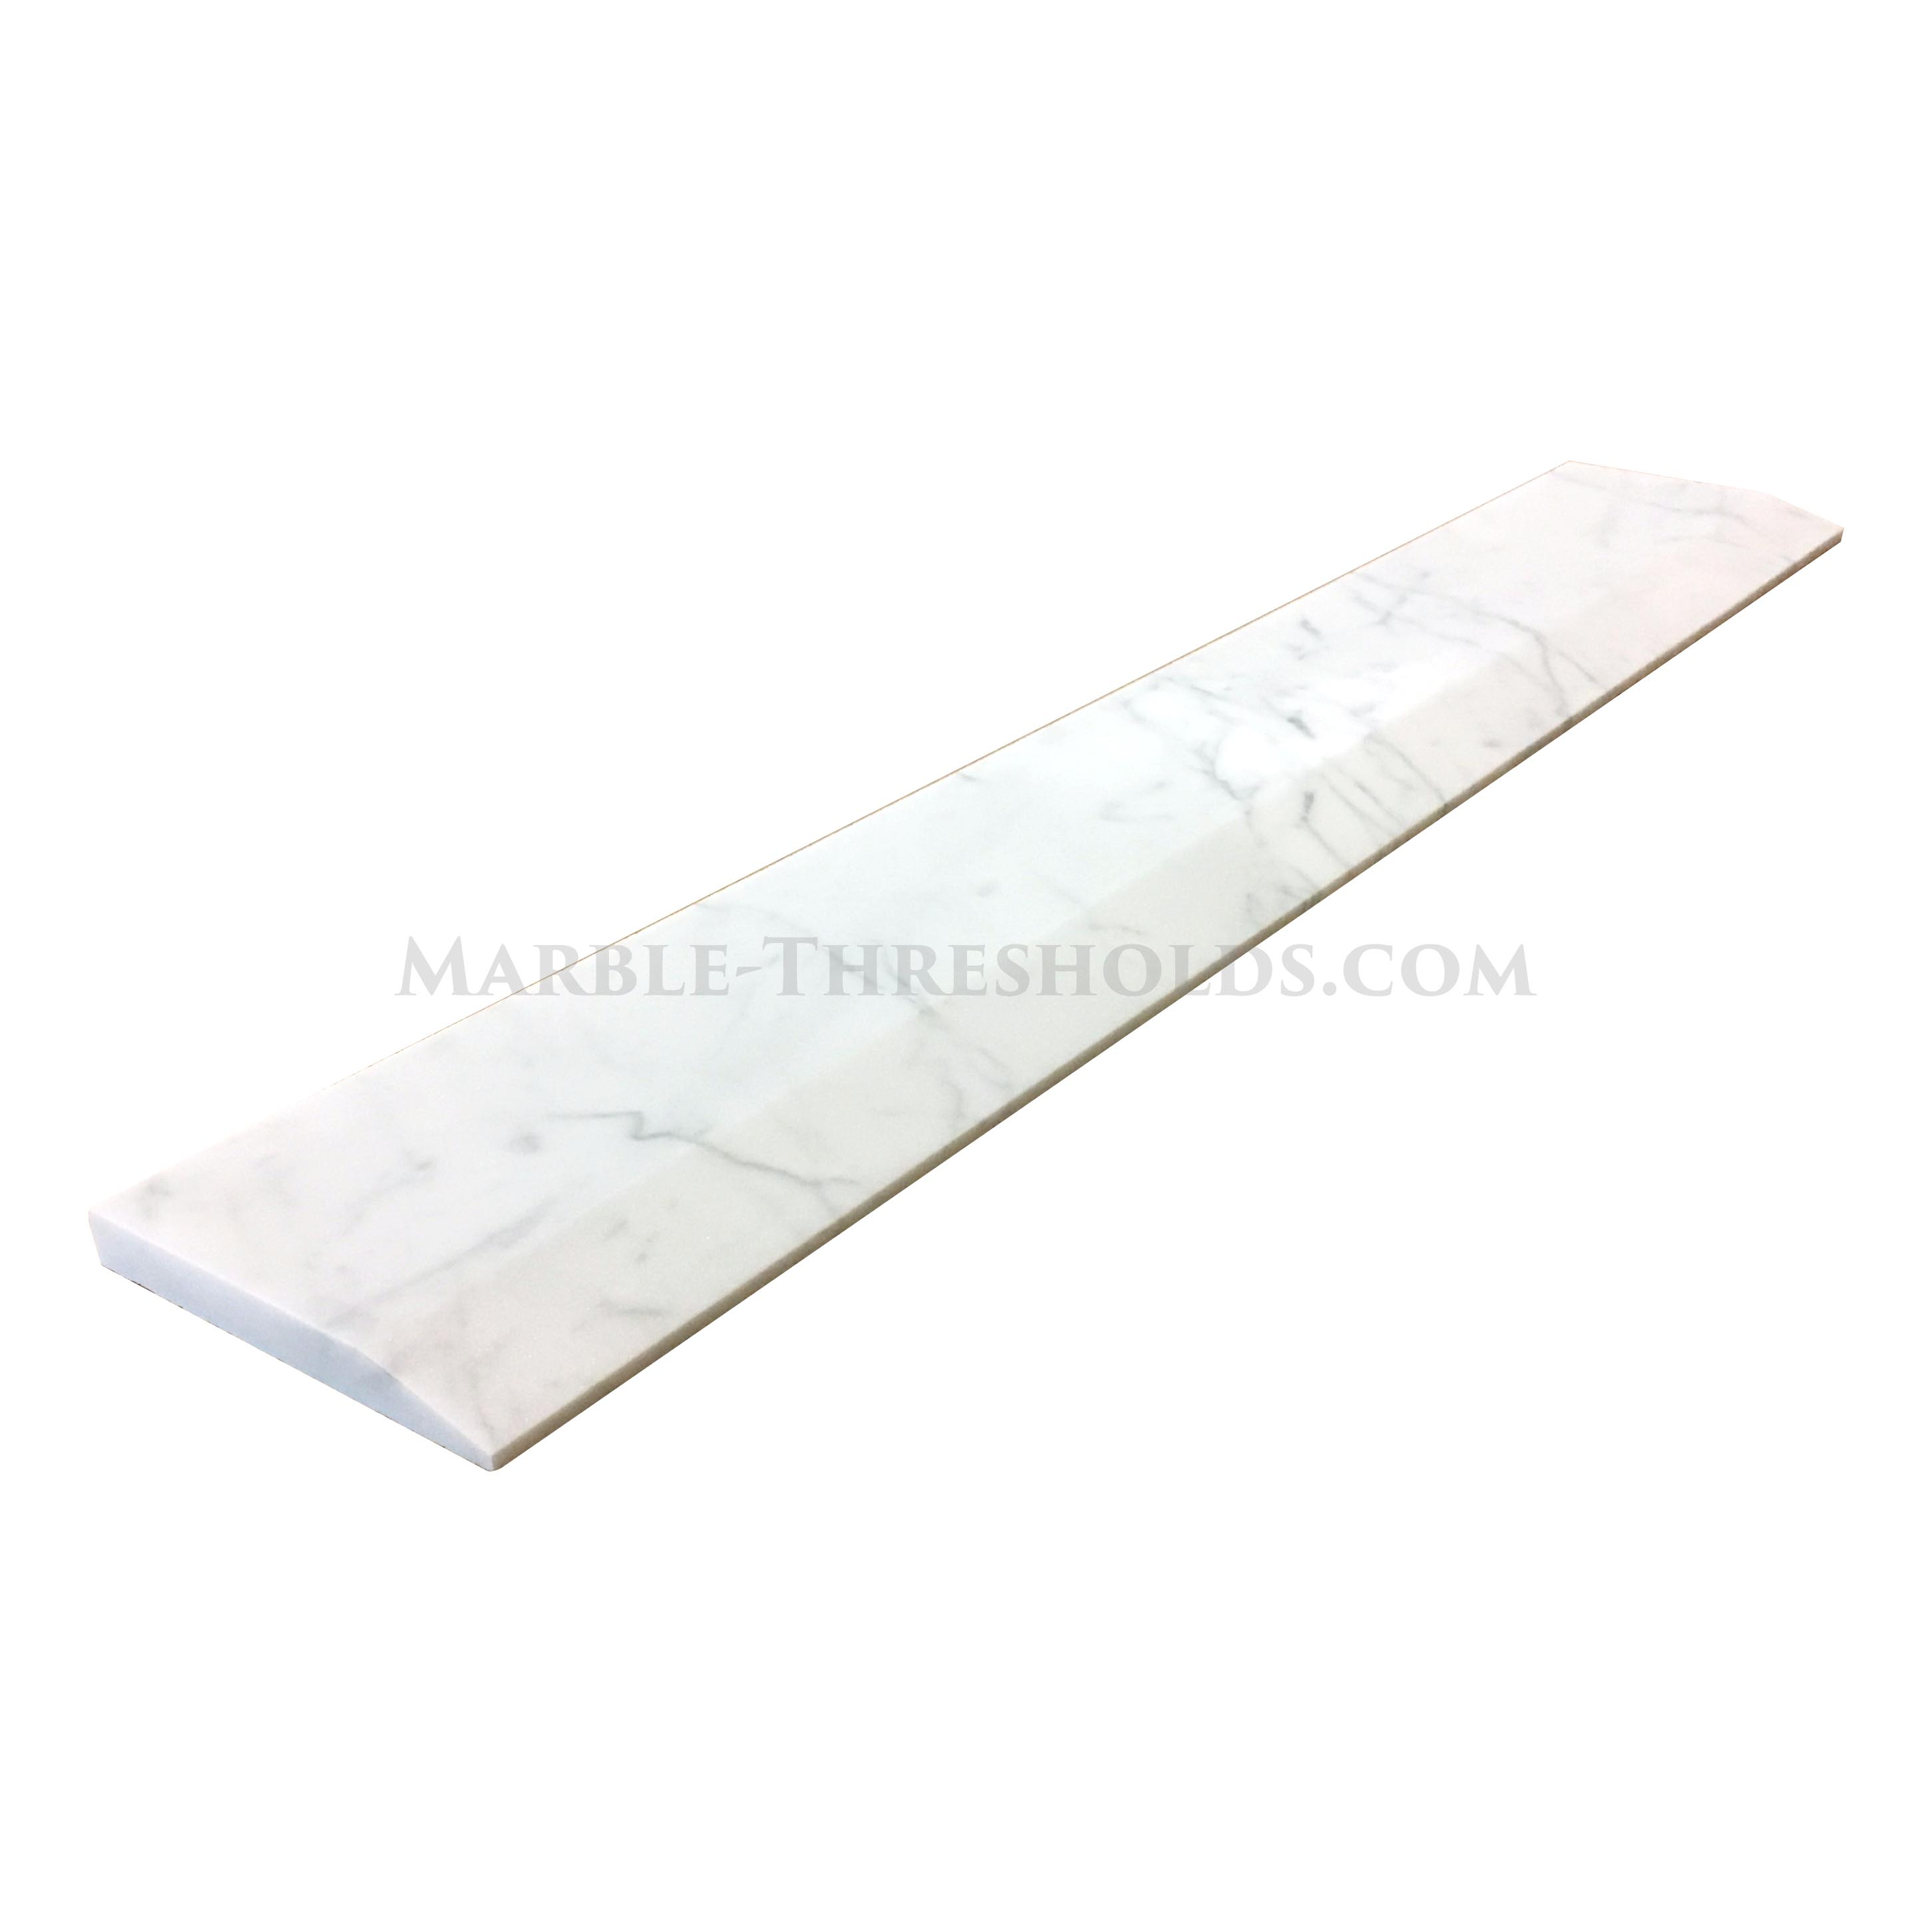 Marble Saddle For Bathroom: Marble Door Saddle & Caulking The Door Jamb By The Marble